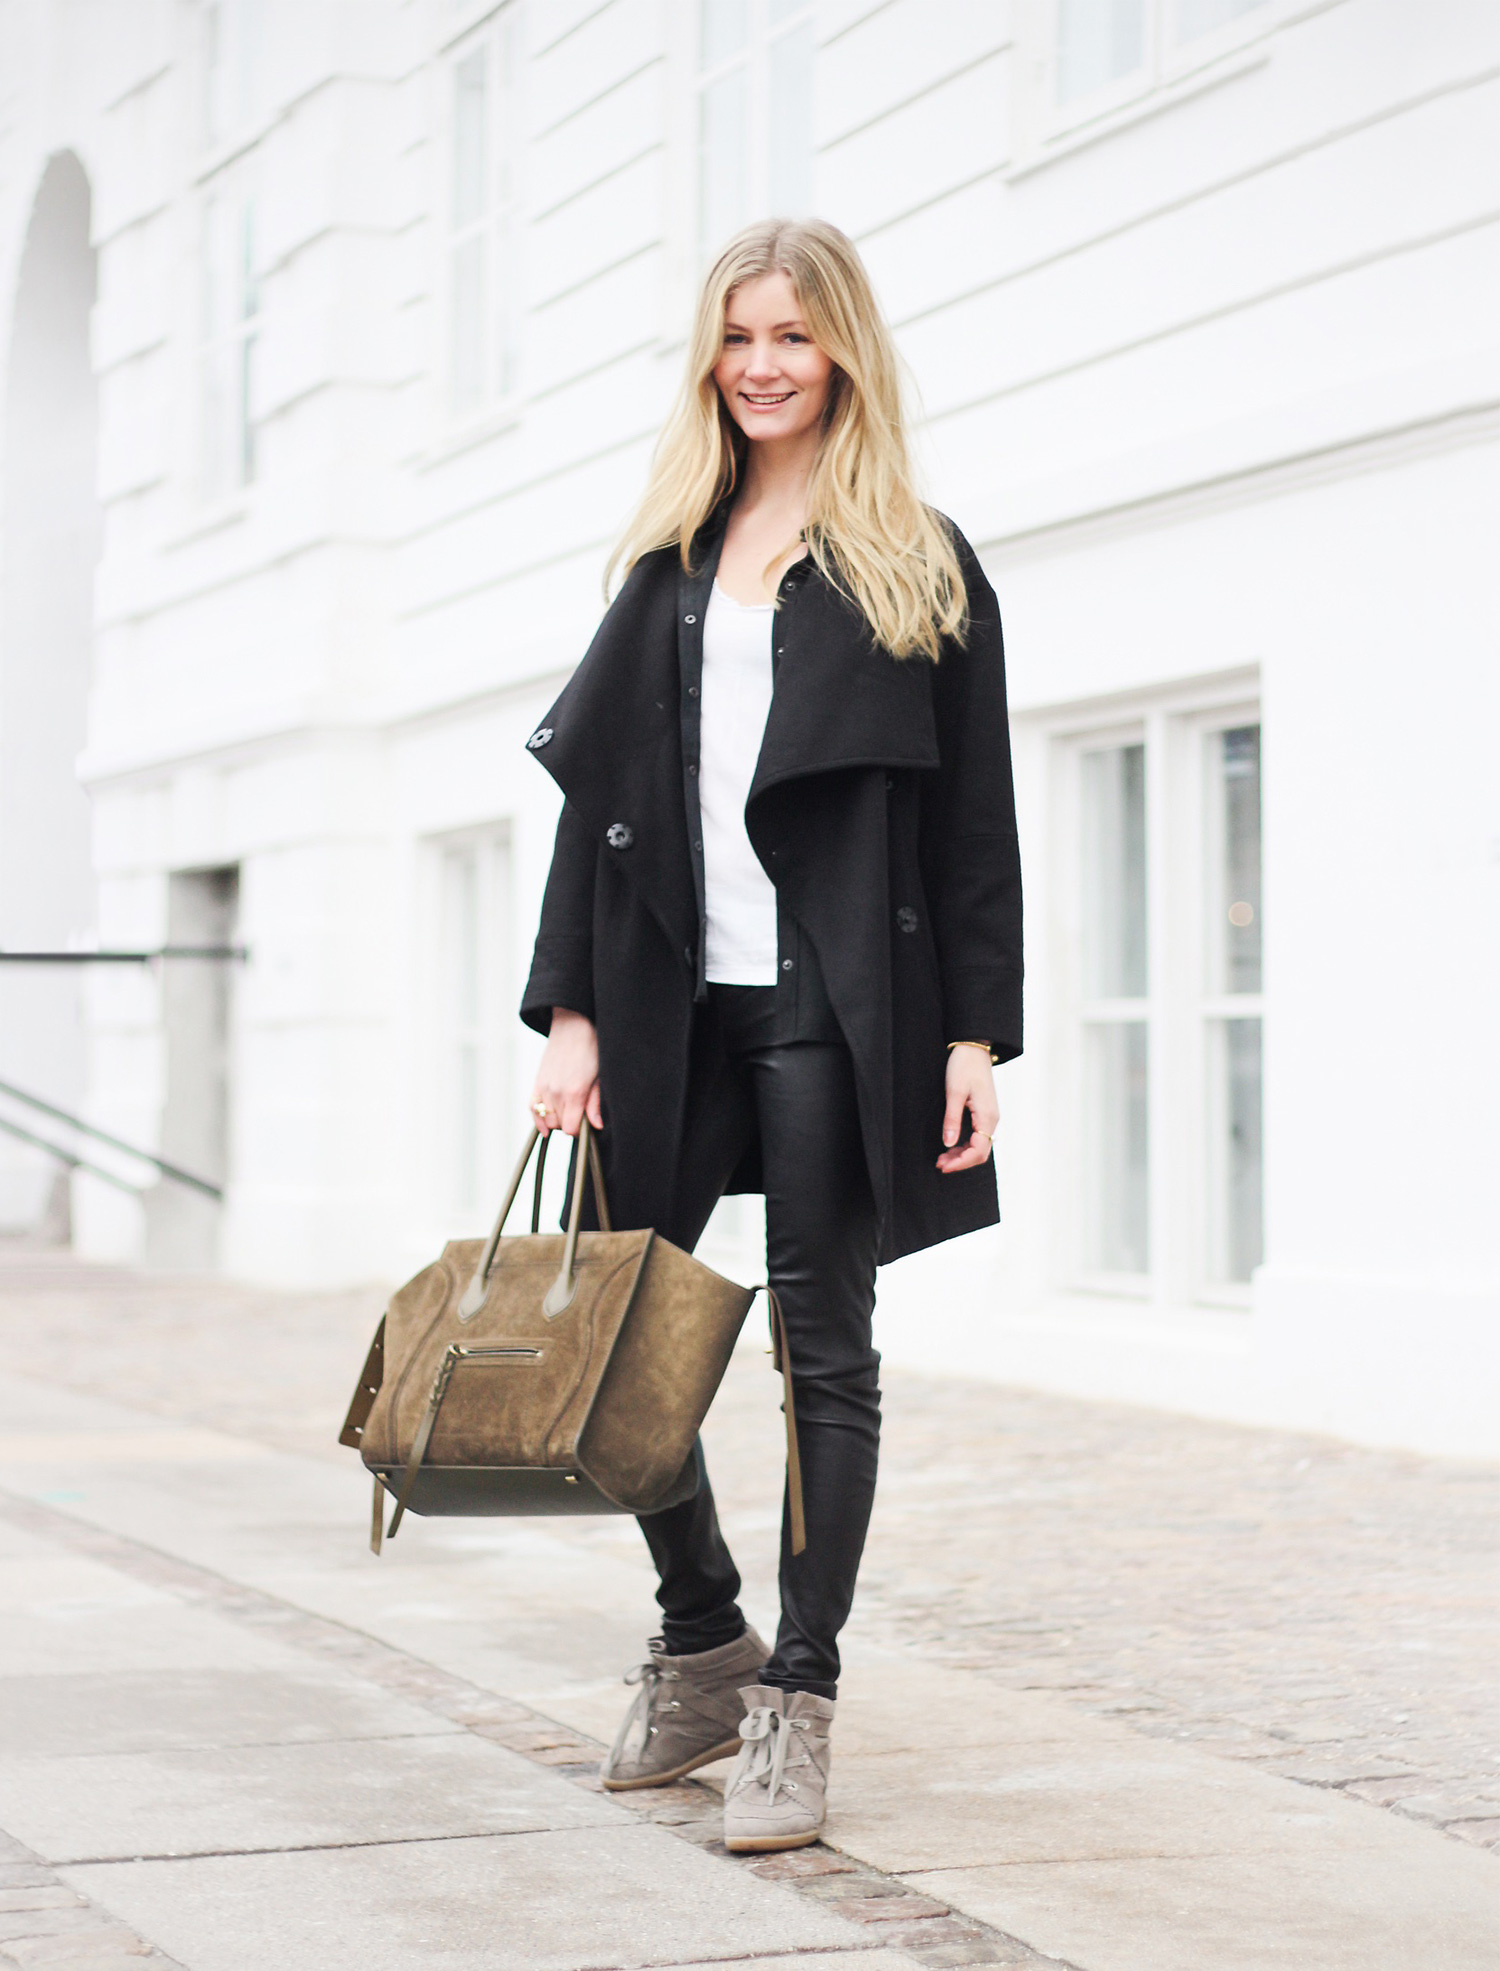 vinter-outfit@2x